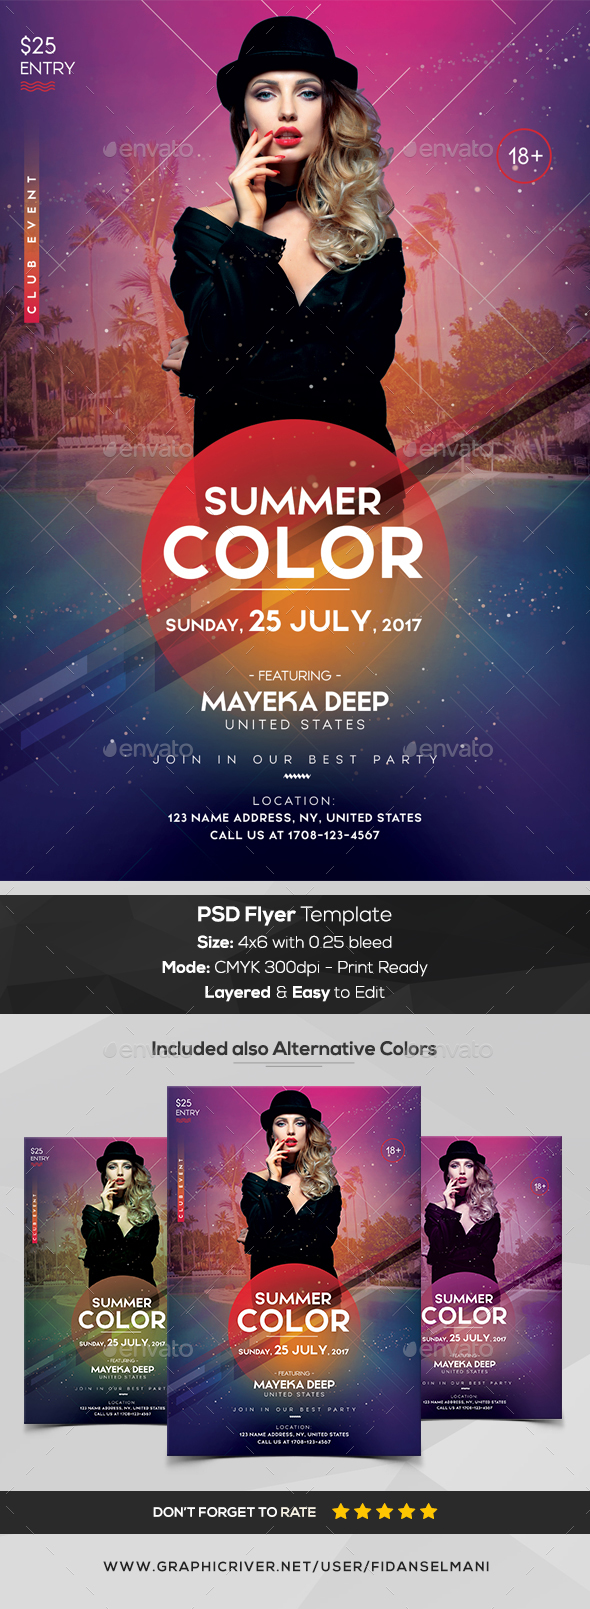 Summer Color - PSD Flyer Template - Events Flyers